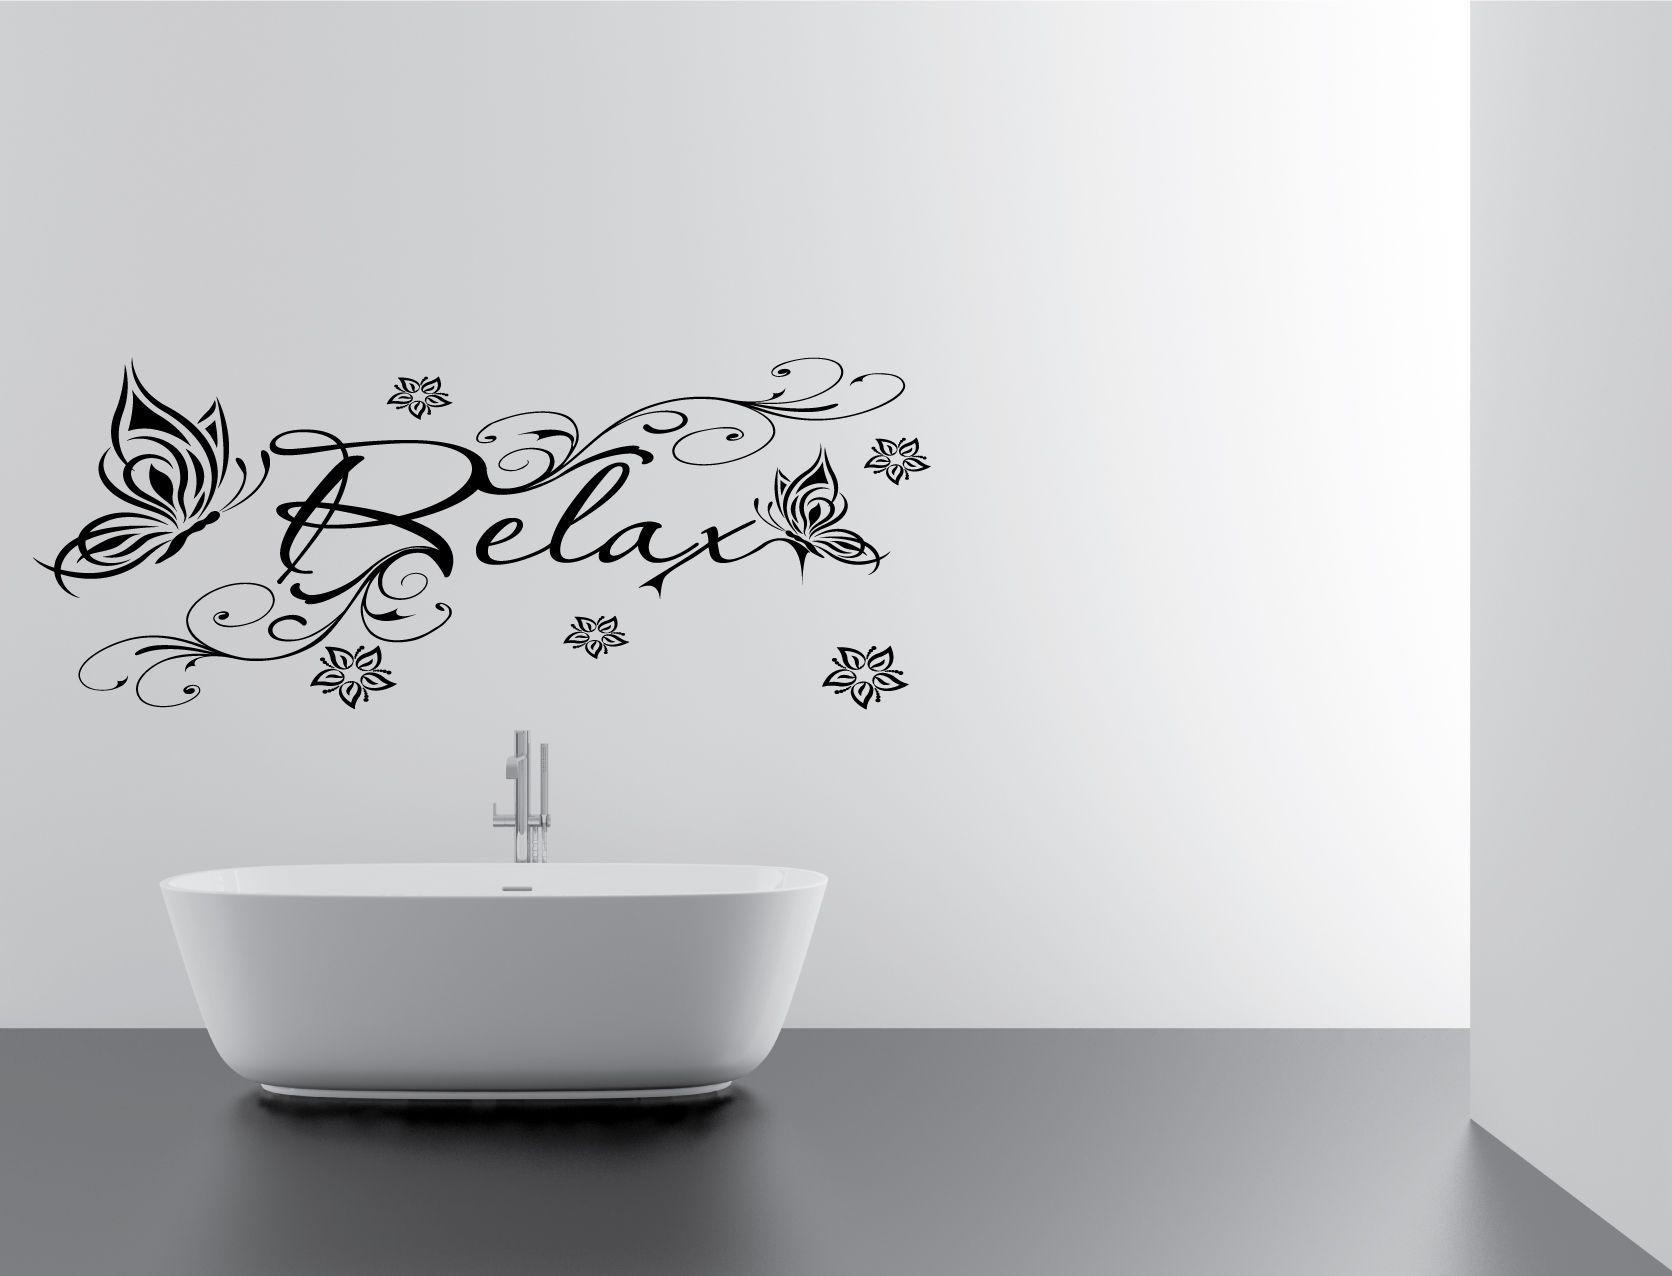 Floral Relax Bathroom Vinyl Wall Art, Decal, Sticker, Cloakroom With Shower Room Wall Art (View 13 of 20)